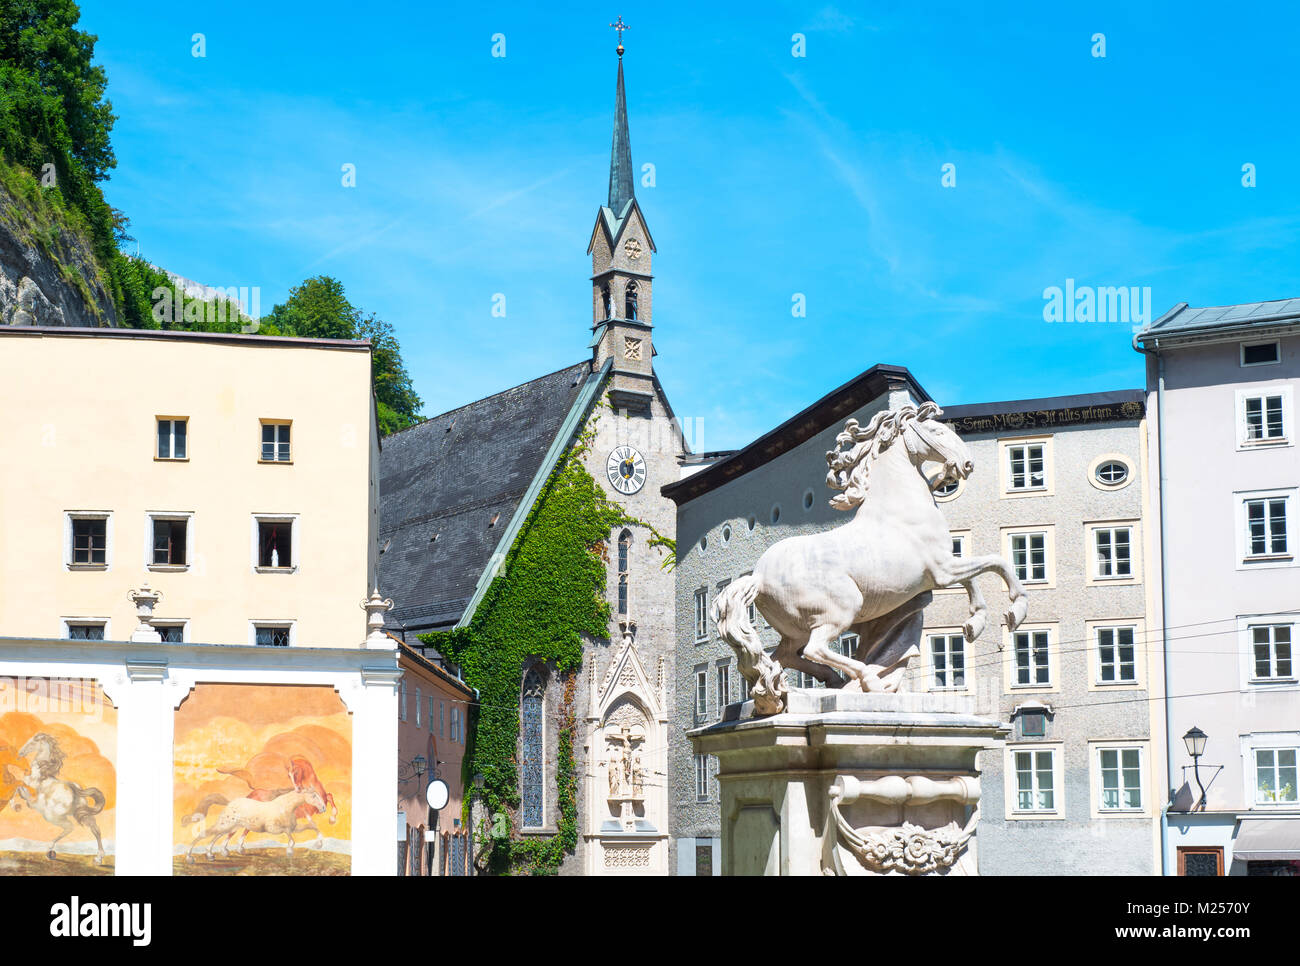 Austria, Salzburg, the Pferde Schwahme equestrian fountain with the St Blasius church in the background - Stock Image